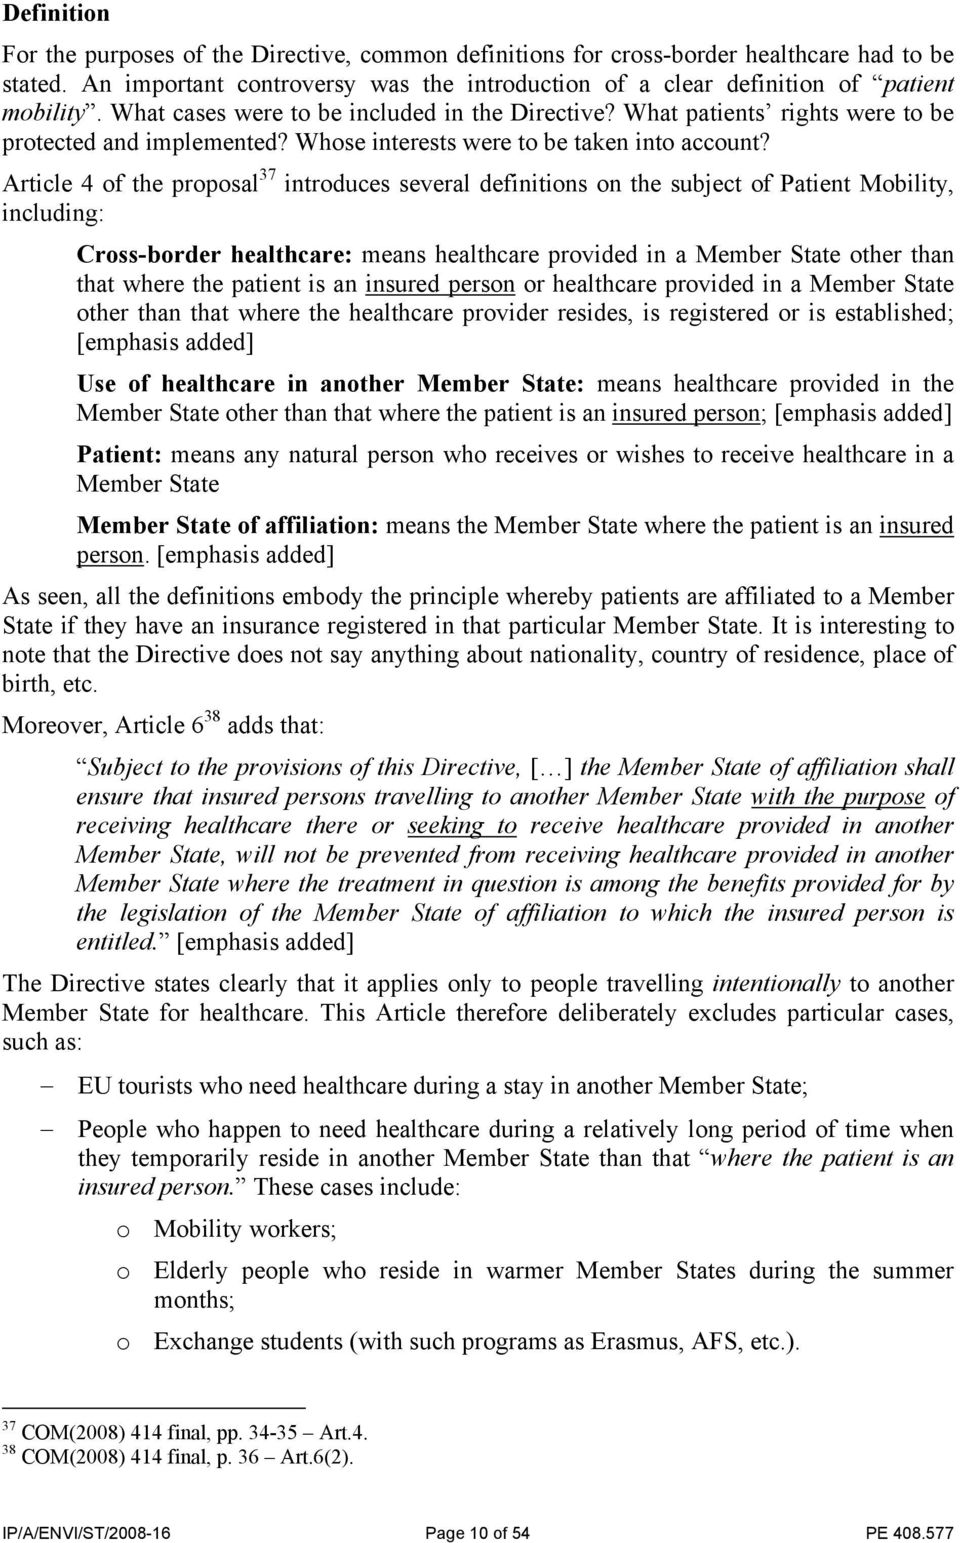 Article 4 of the proposal 37 introduces several definitions on the subject of Patient Mobility, including: Cross-border healthcare: means healthcare provided in a Member State other than that where